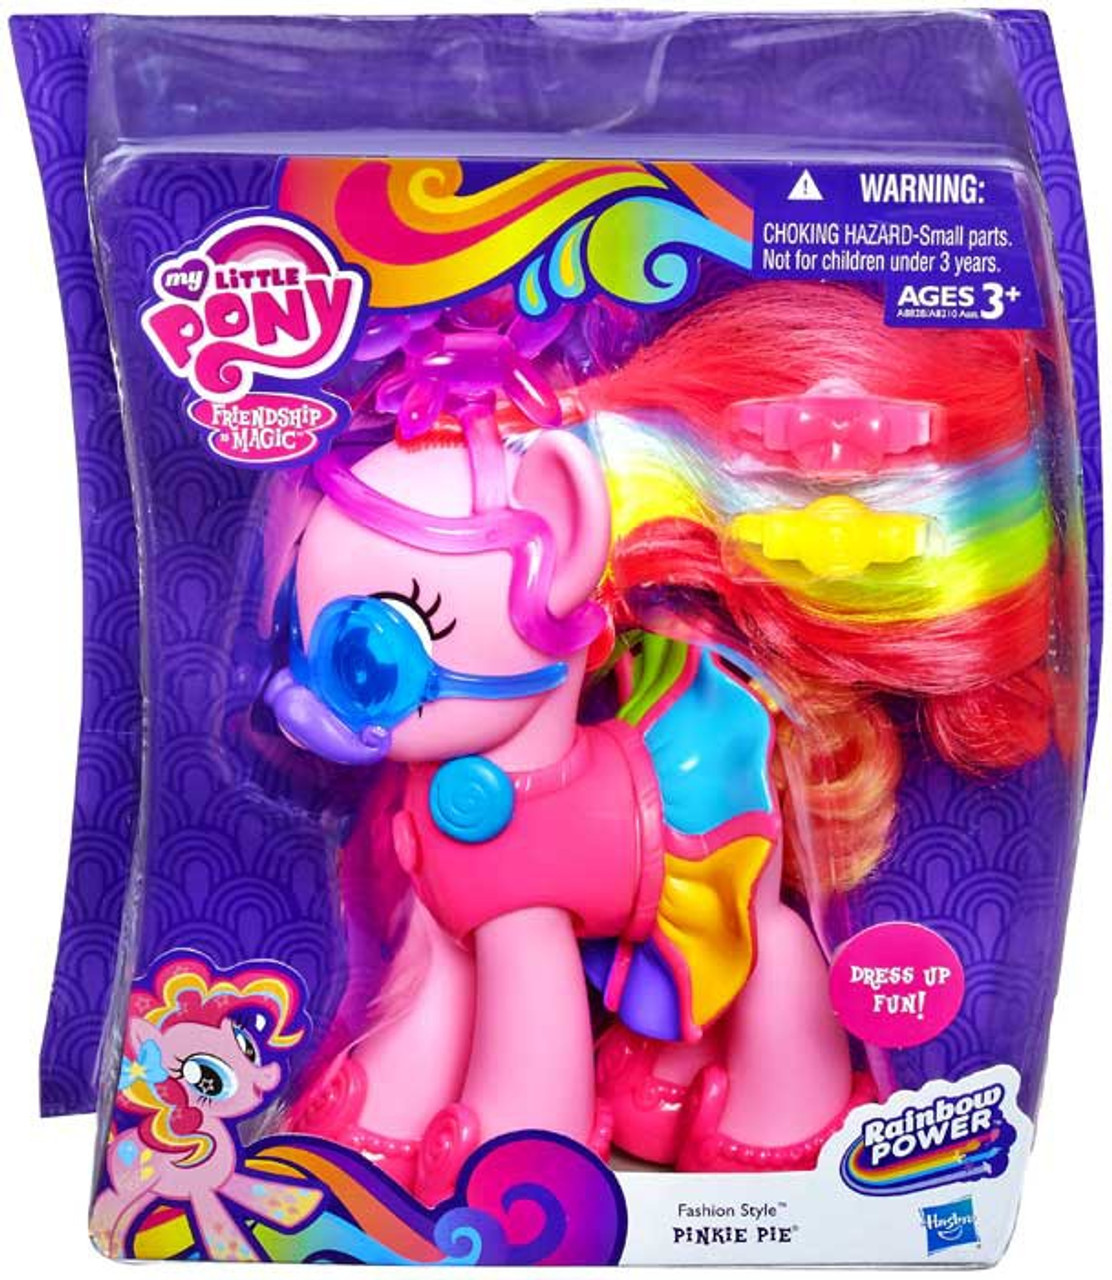 My Little Pony Friendship Is Magic Rainbow Power Pinkie Pie Figure Fashion Style Hasbro Toys